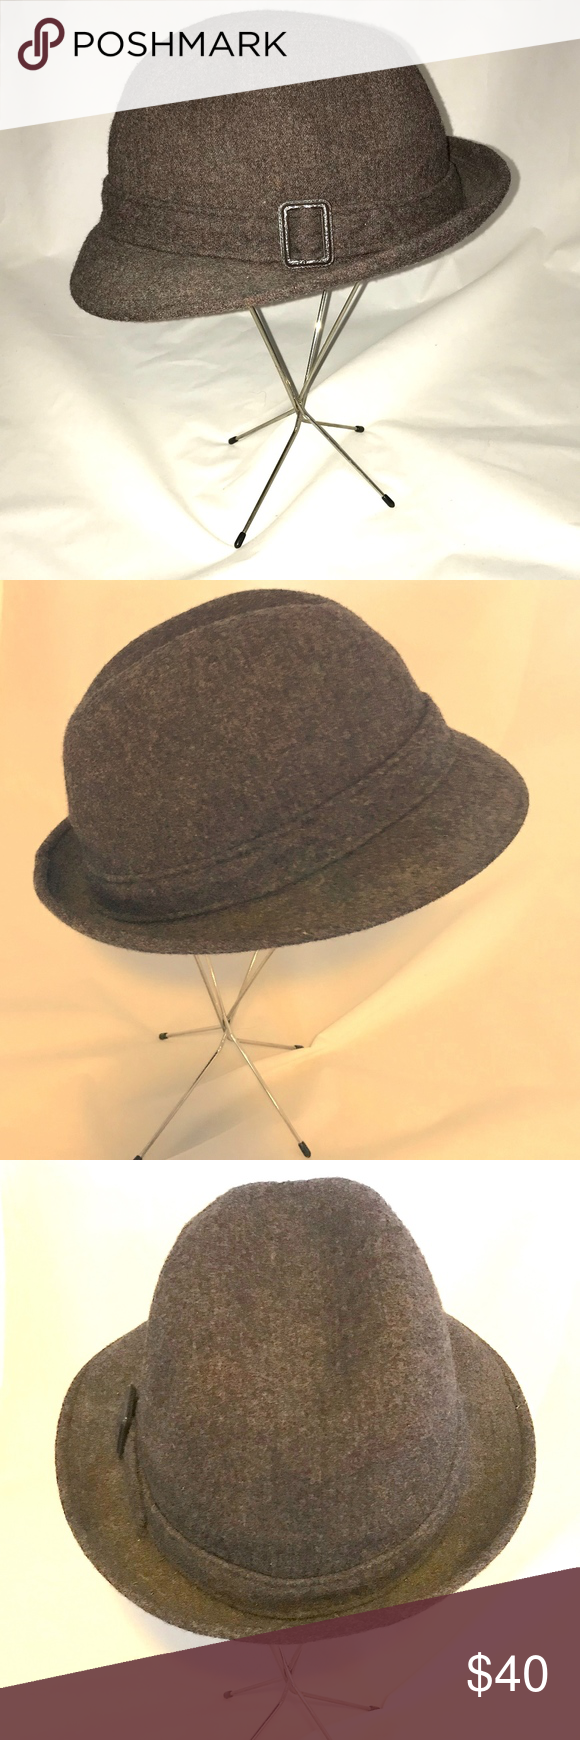 6258b12ced6fa Pendleton Hat Fedora Brown 100% Virgin Wool Hat Fedora Dark Brown by Pendleton  Vintage 100